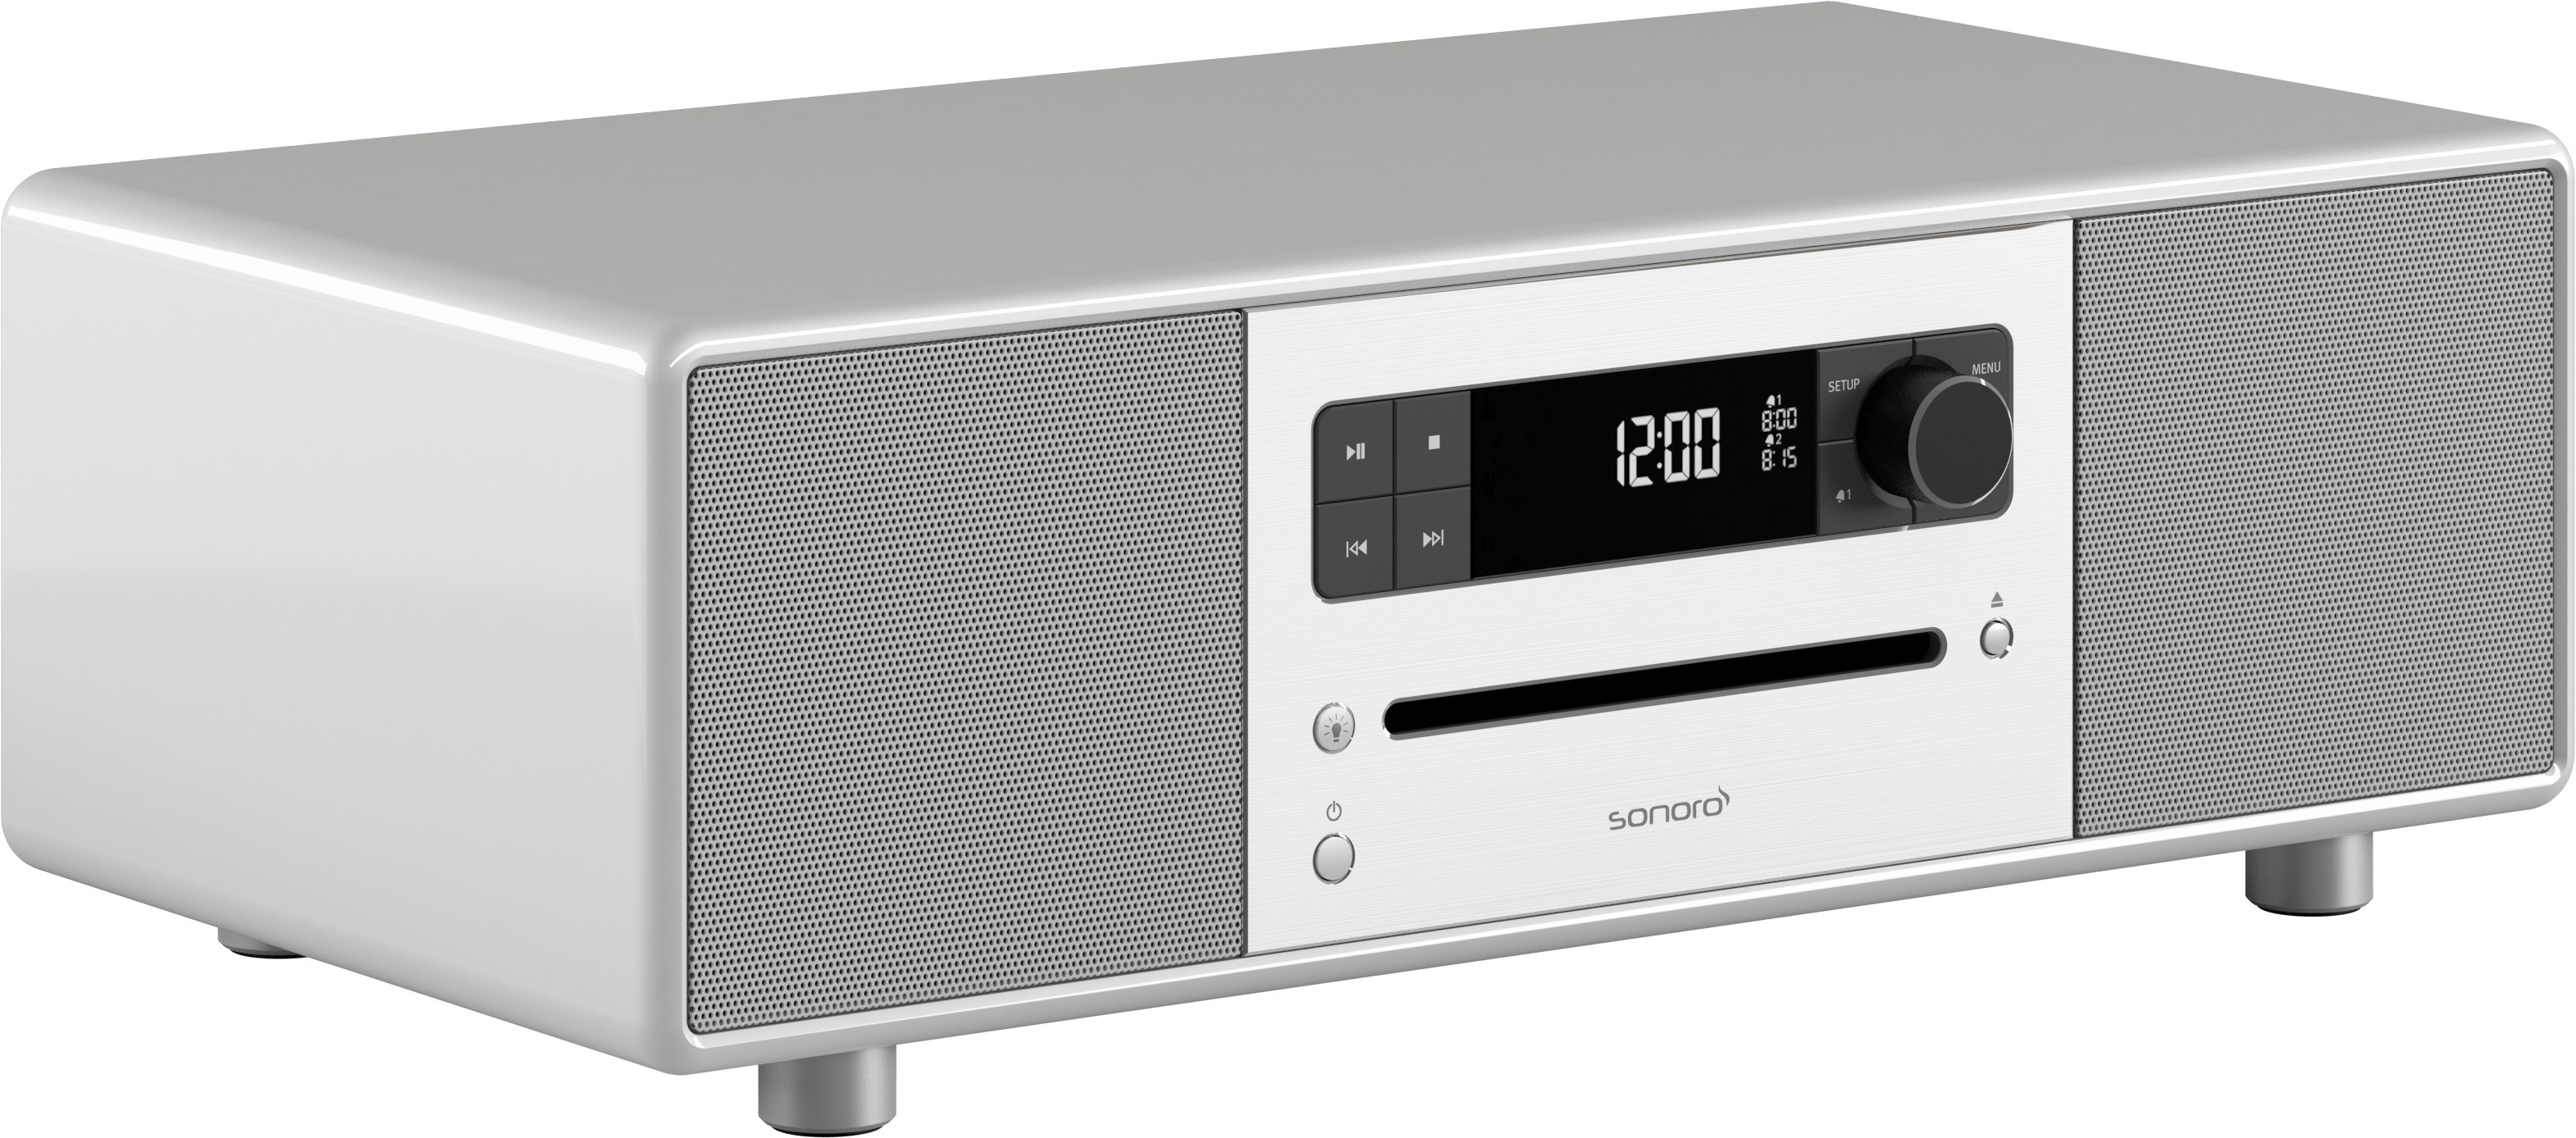 Sonoro stereo set Stereo 320 zilver